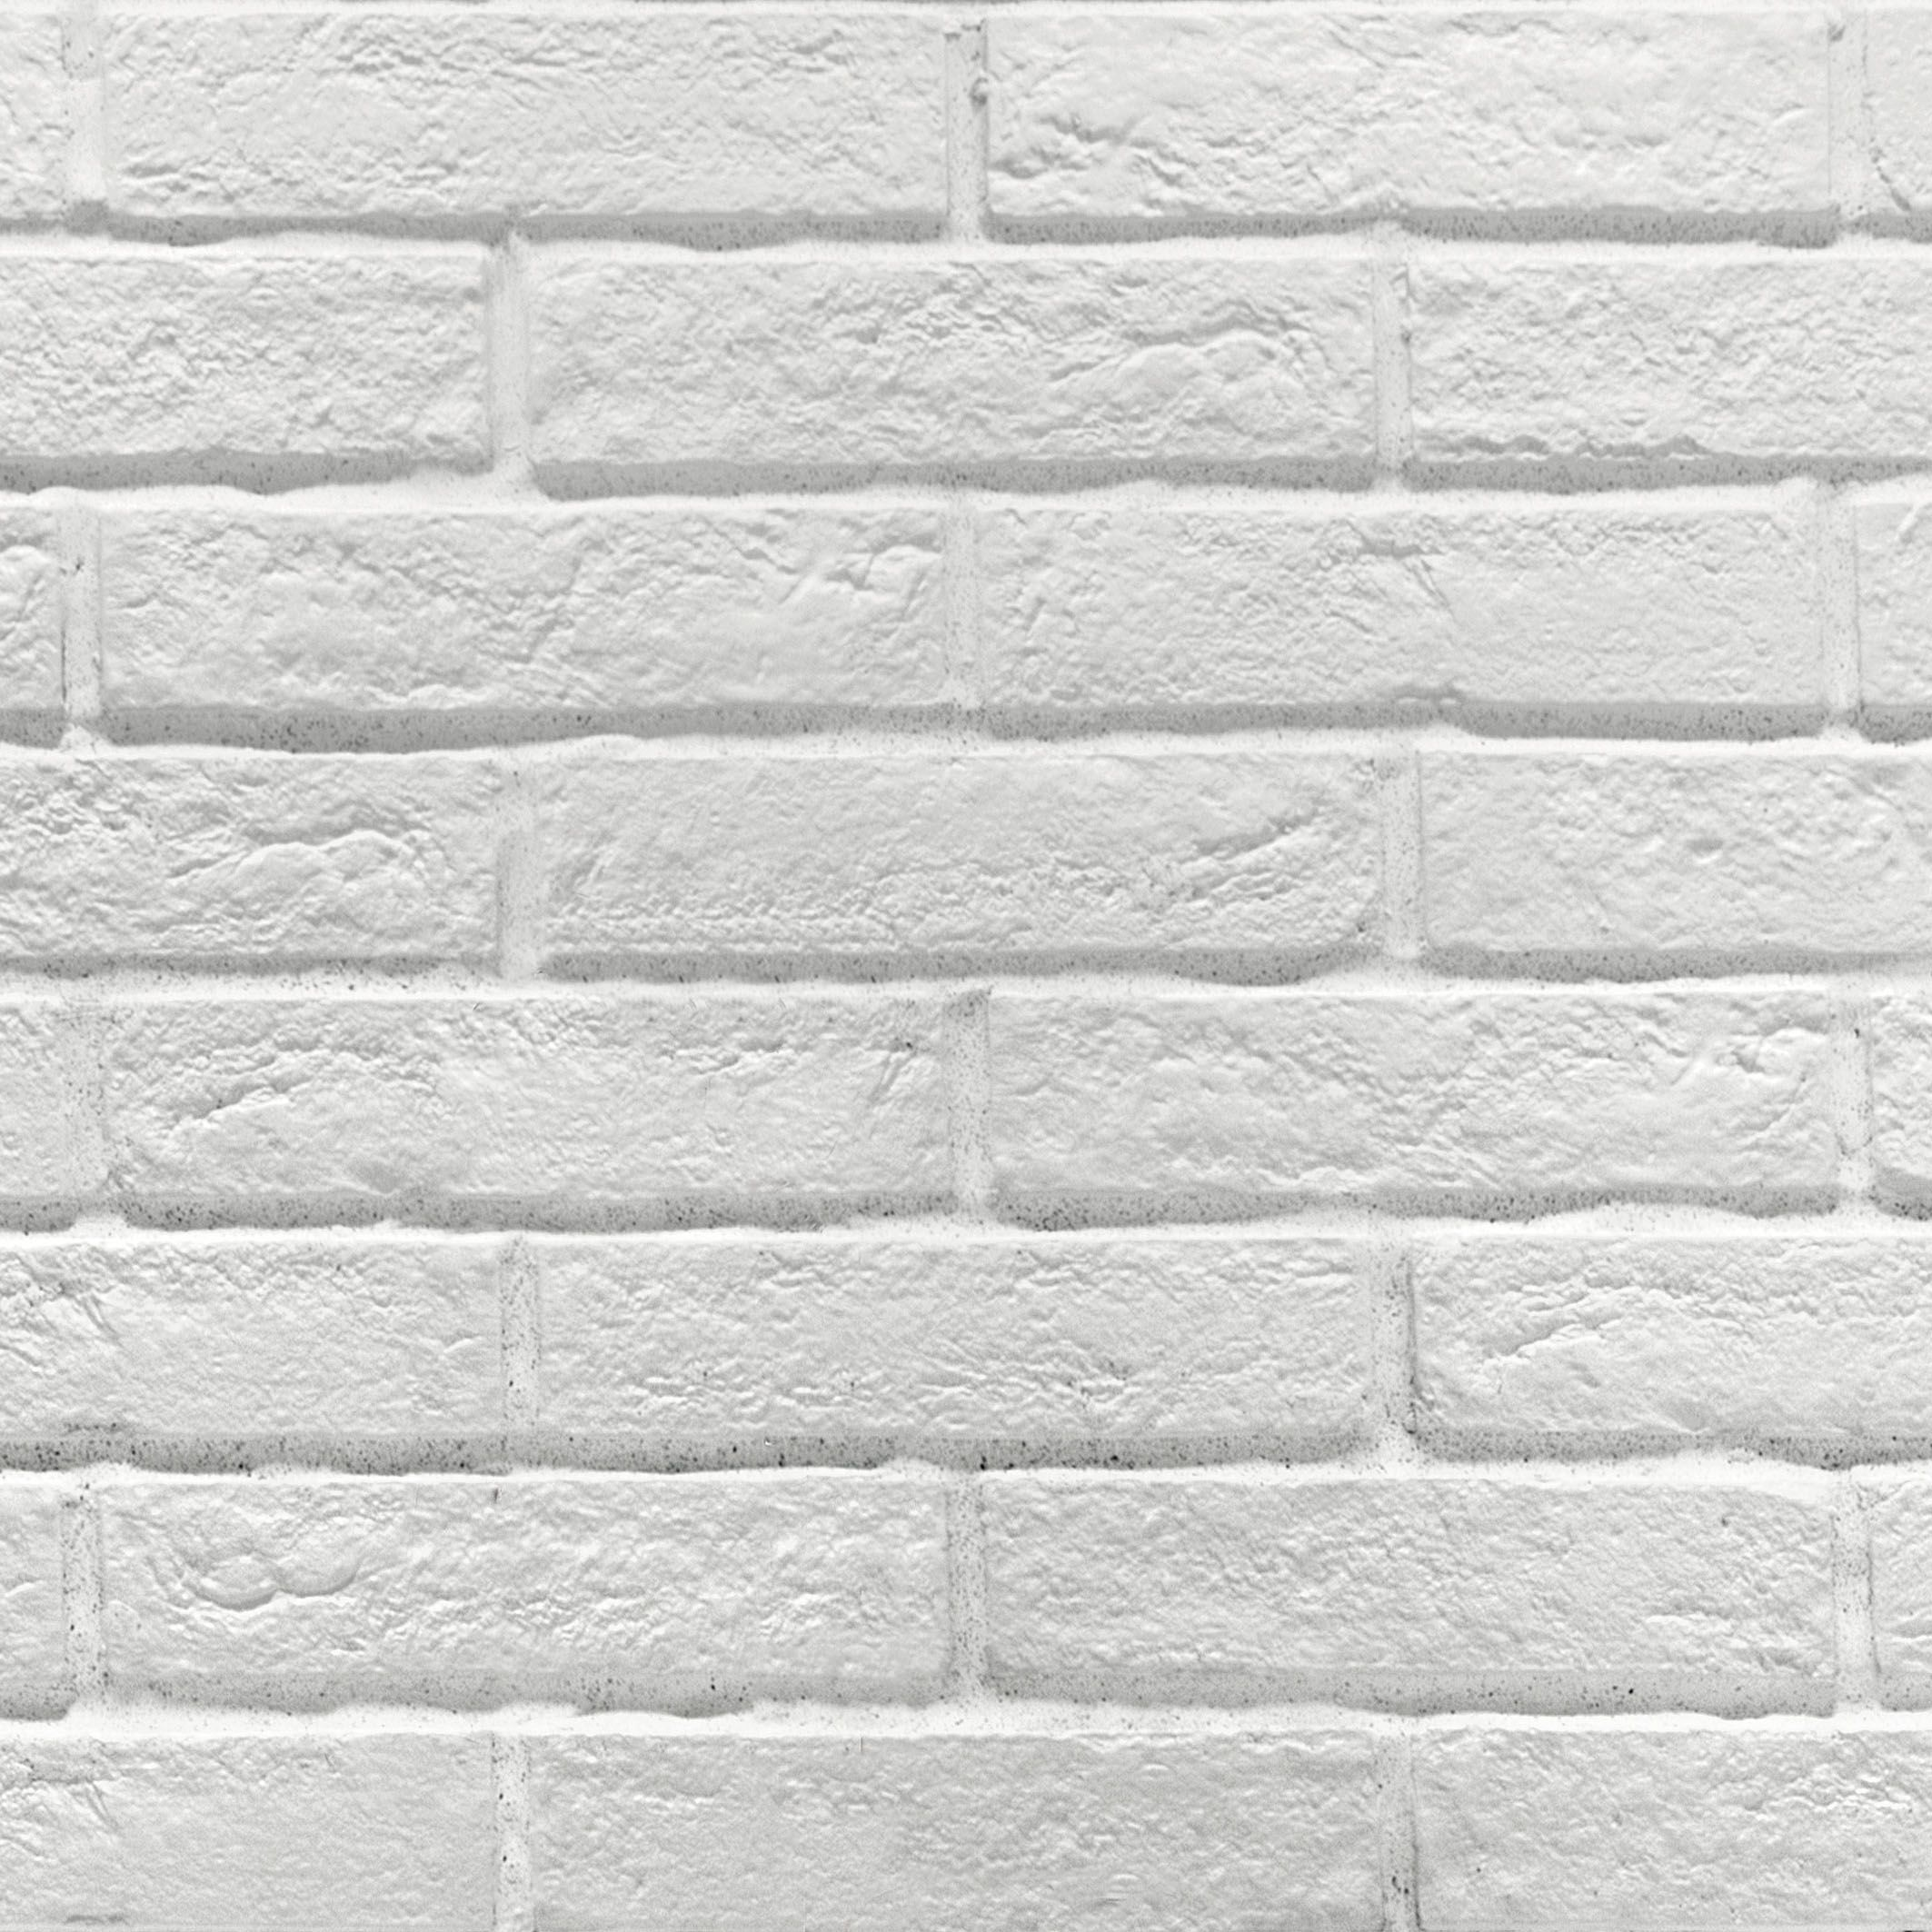 White Brick Look Tile Newy White Brick Tile 250x60mm Subway Metro Tiles